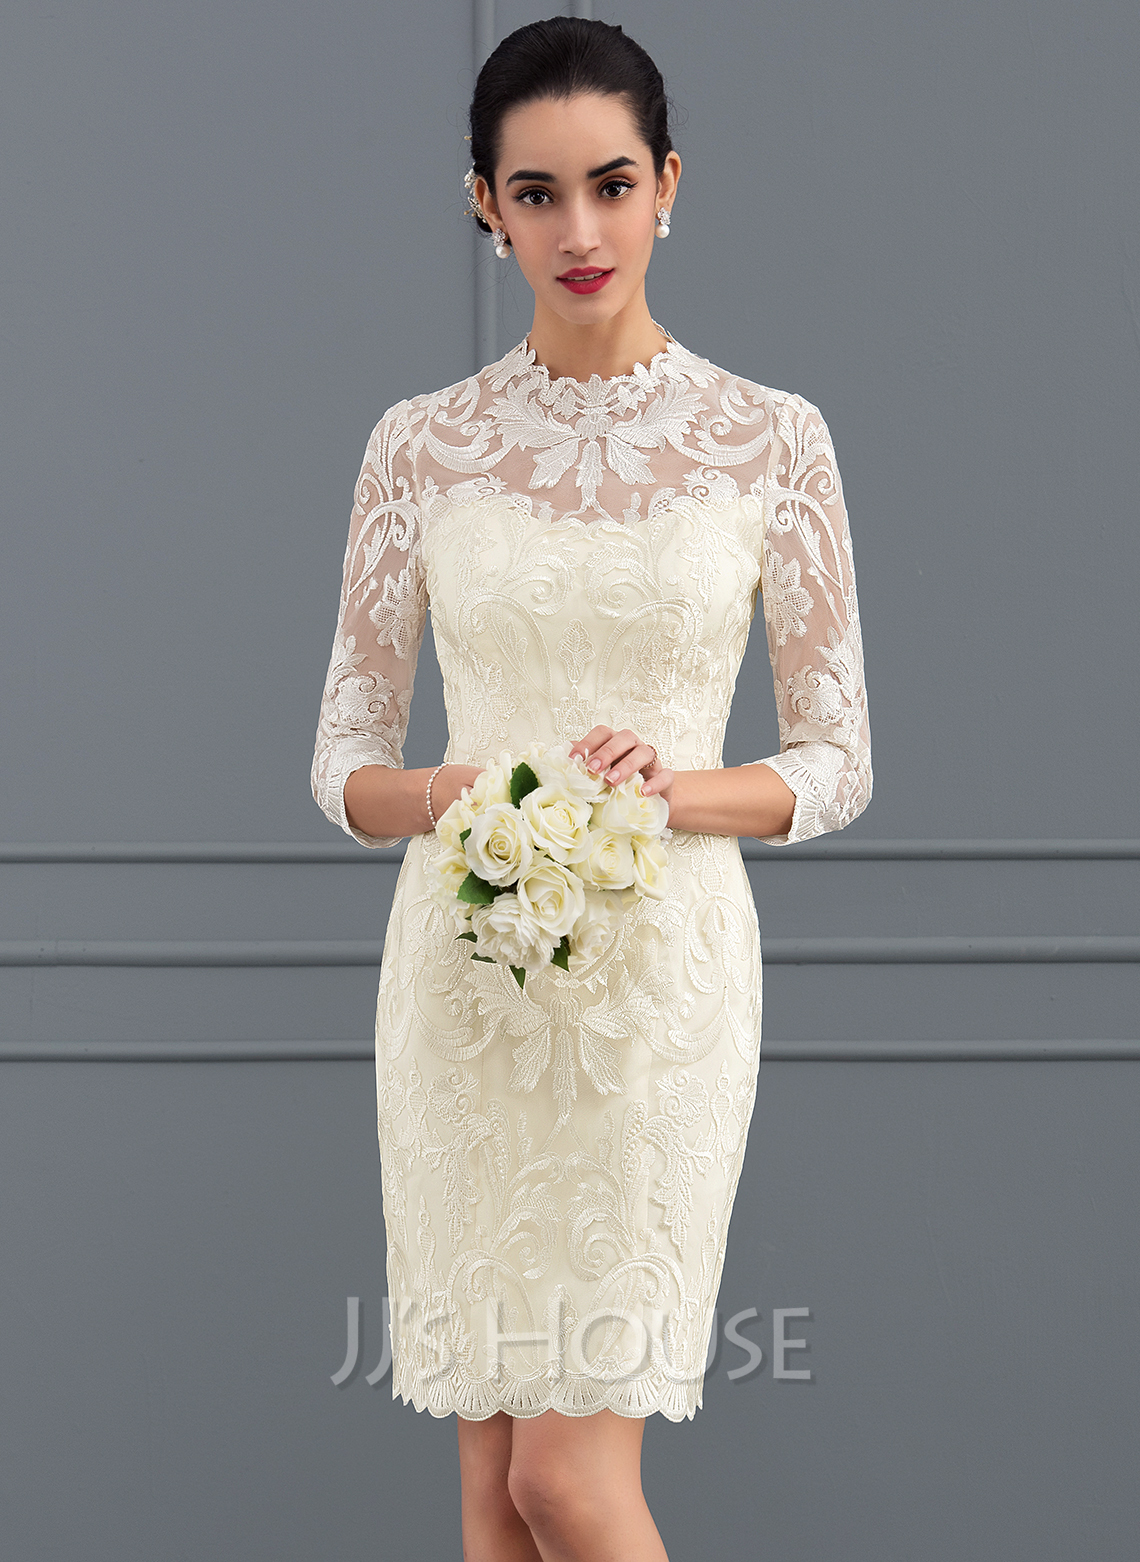 Plus Size Wedding Dresses Bridal Dresses Jjs House